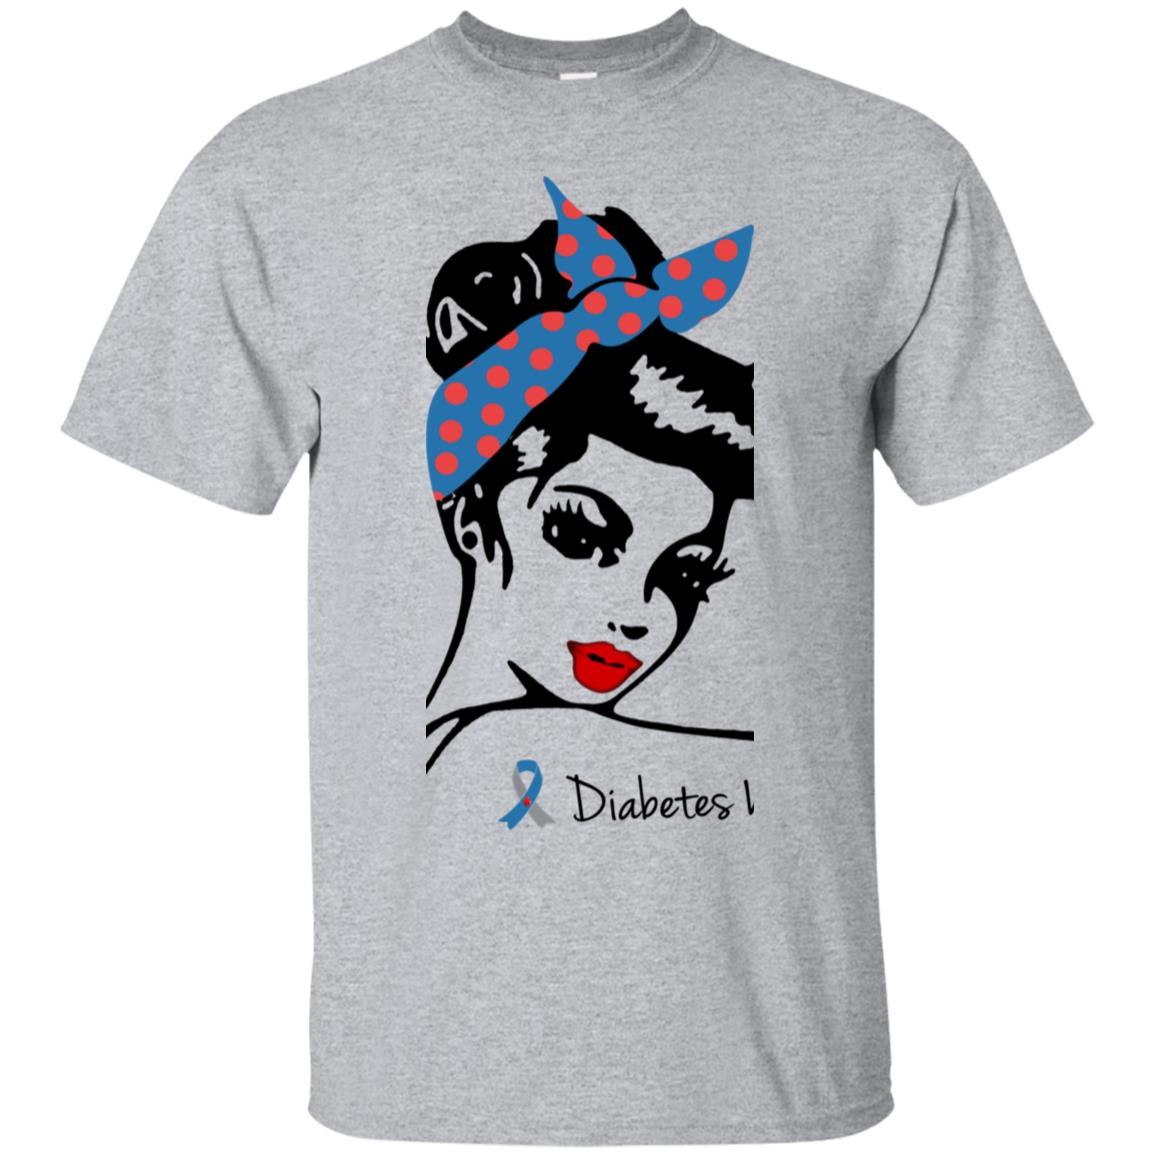 Diabetes warrior unbreakable t-shirt 99promocode